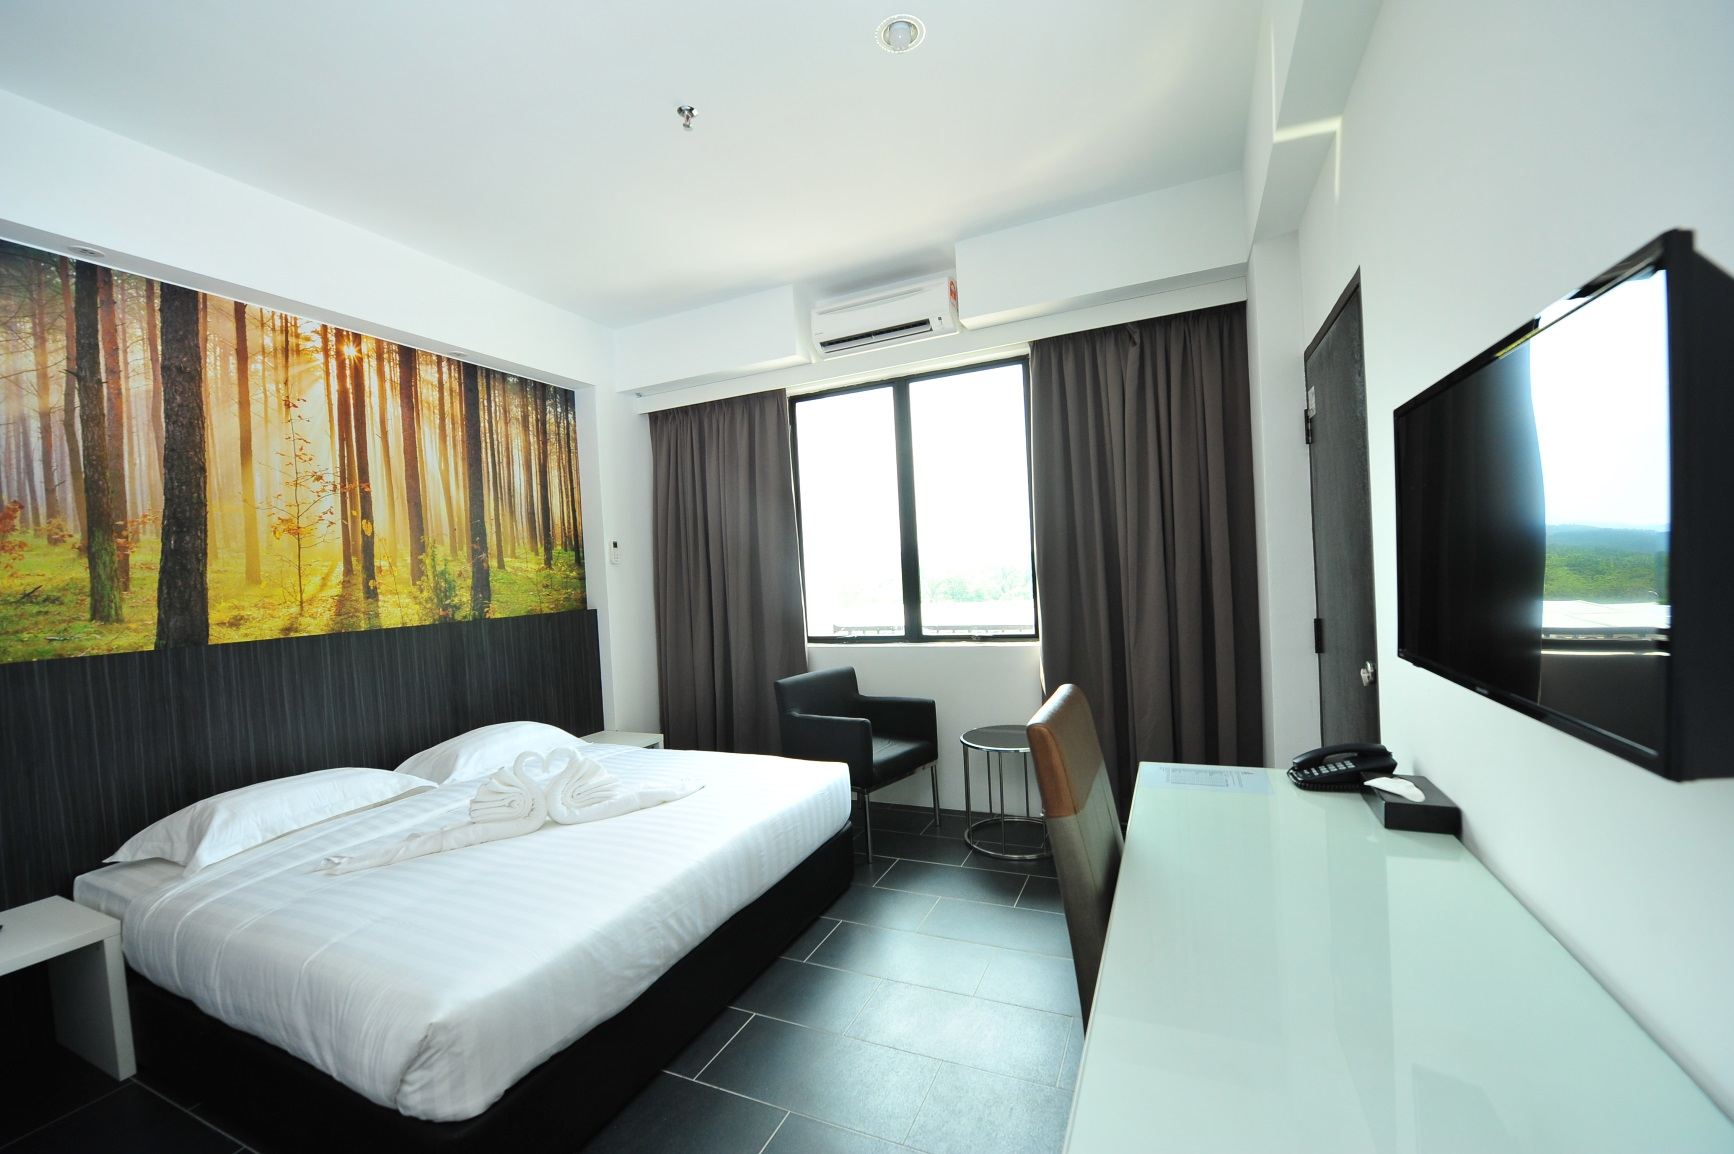 Hotel King Bed with Writing Desk